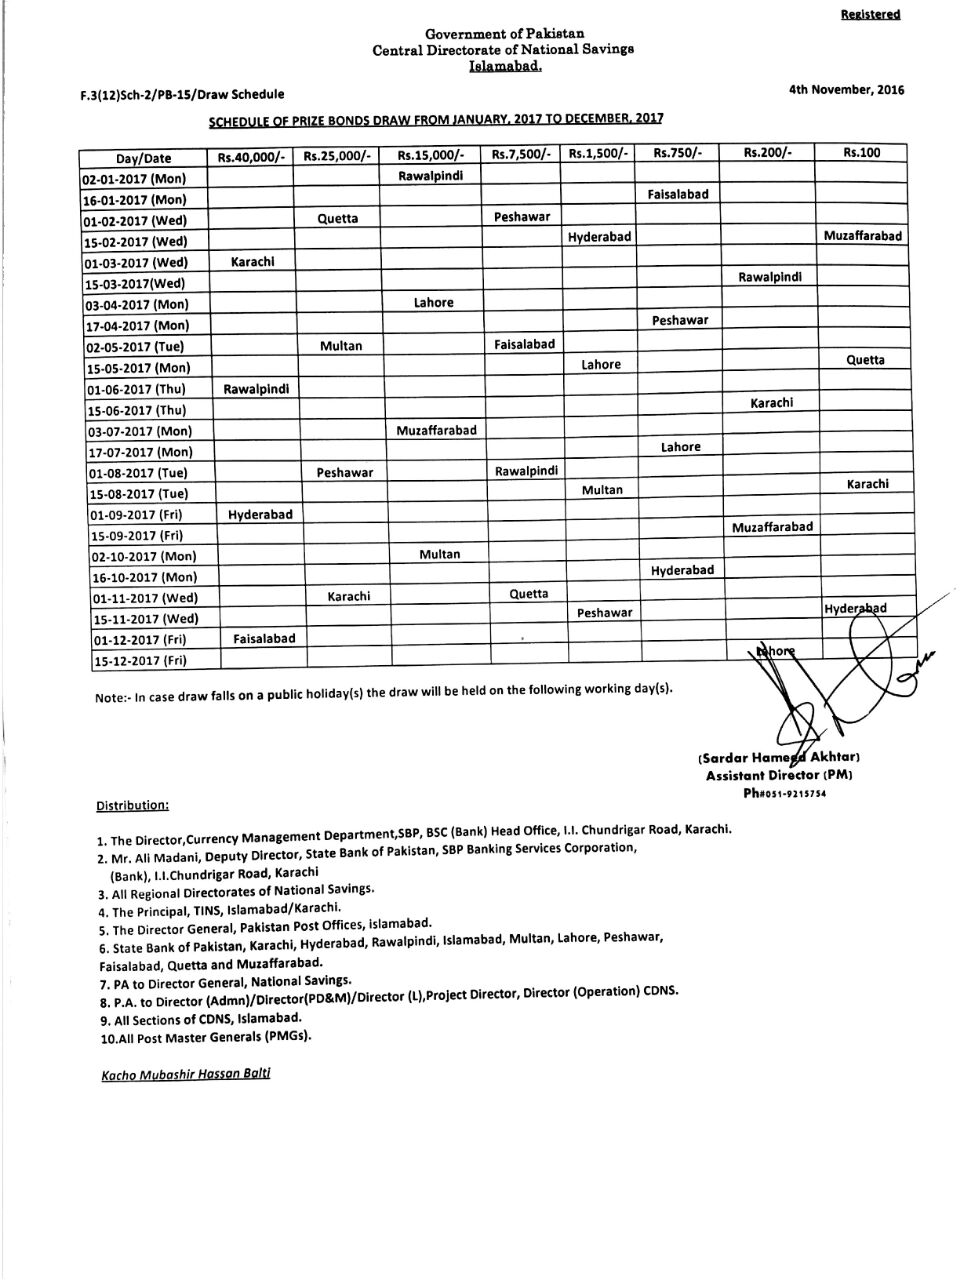 National Savings Prize bond Schedule for the year 2017